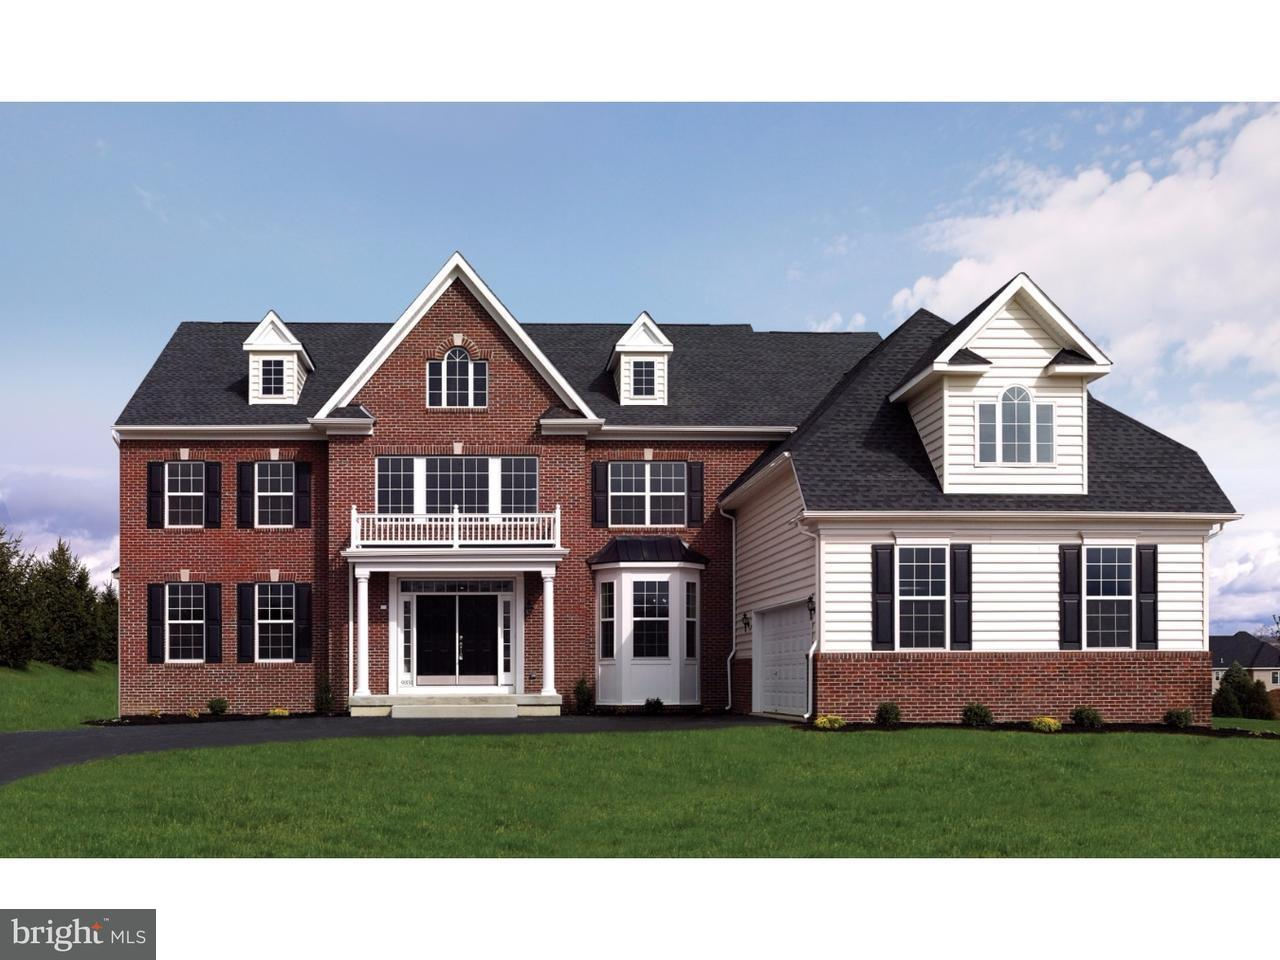 Single Family Home for Sale at 181 WINTERBERRY Lane Chalfont, Pennsylvania 18914 United States